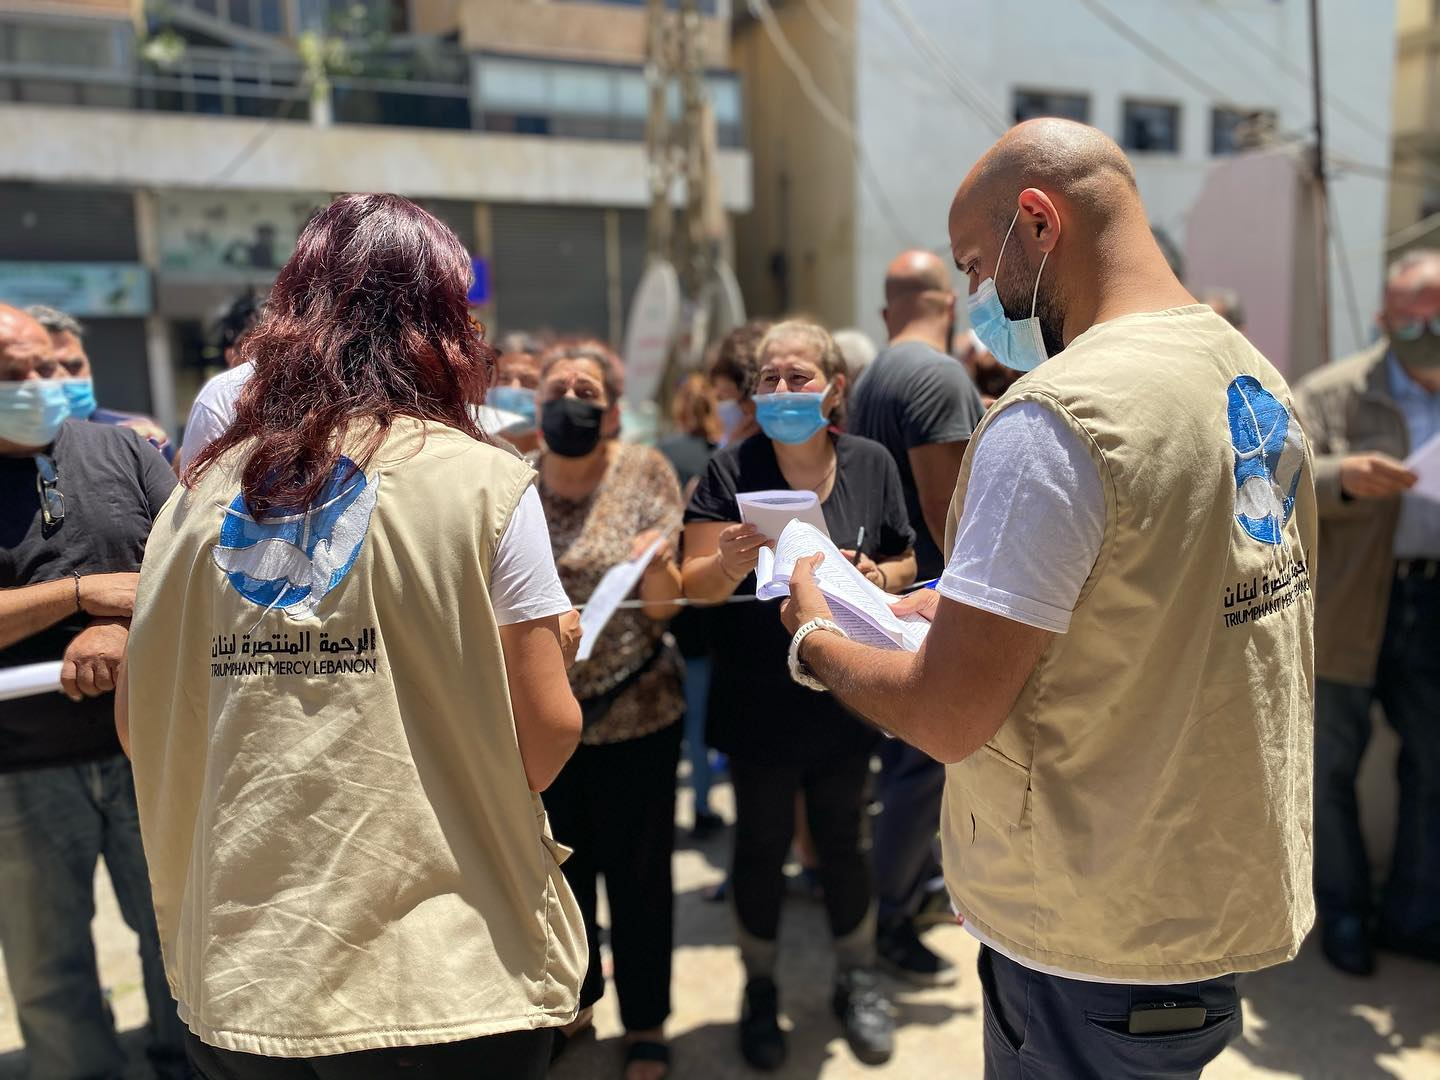 Triumphant Mercy Lebanon Purchases Space for House of Prayer